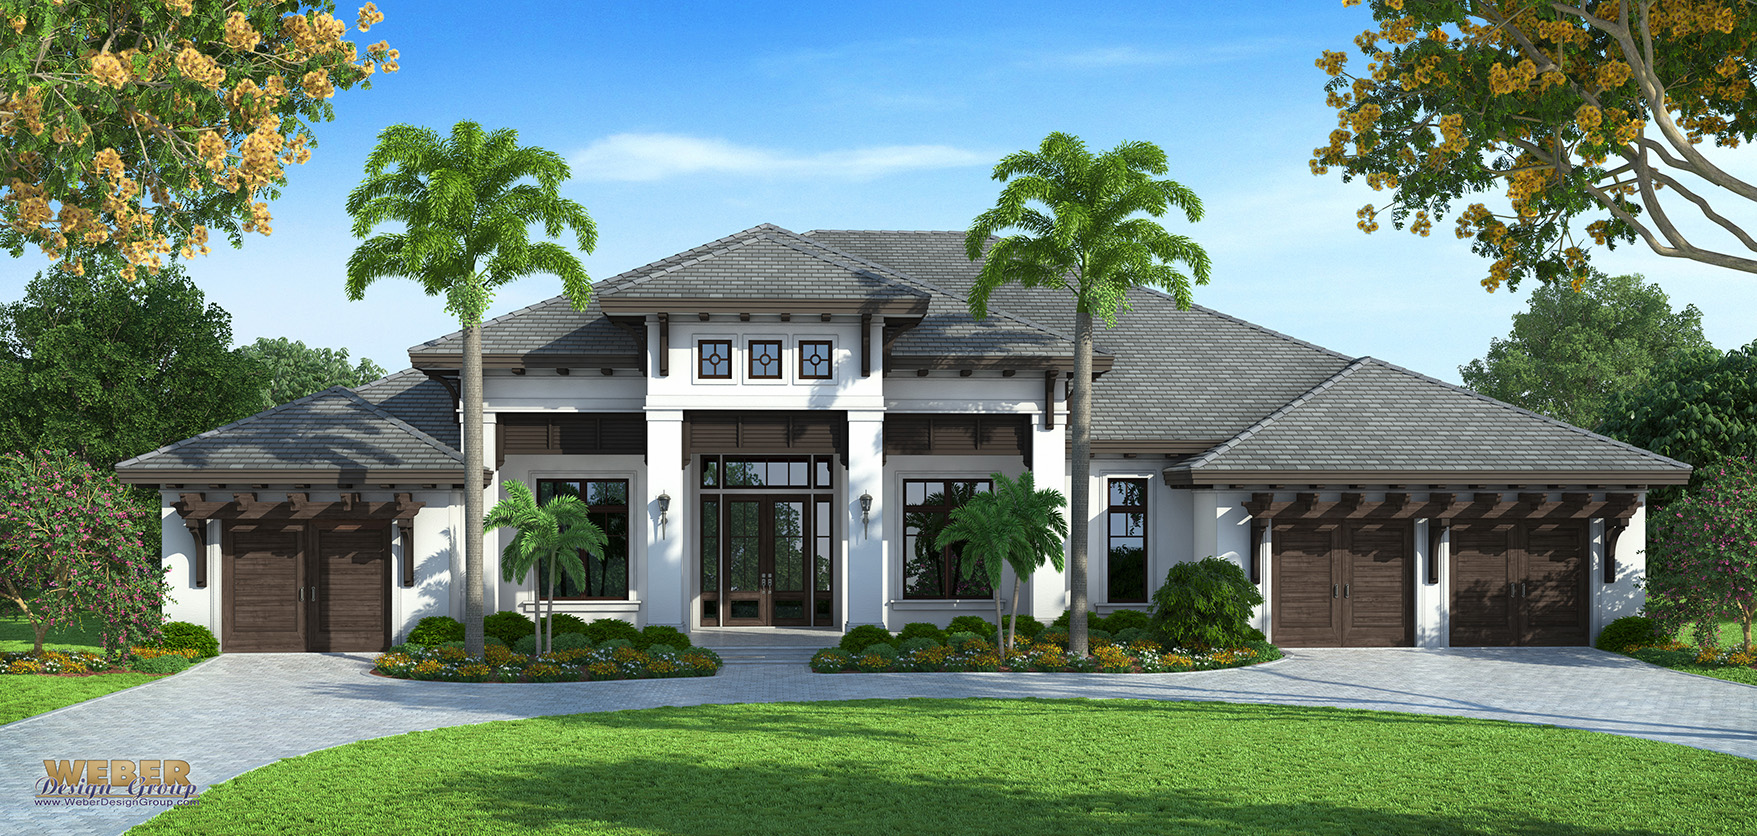 Caribbean house plans caribbean style architecture for Caribbean house designs